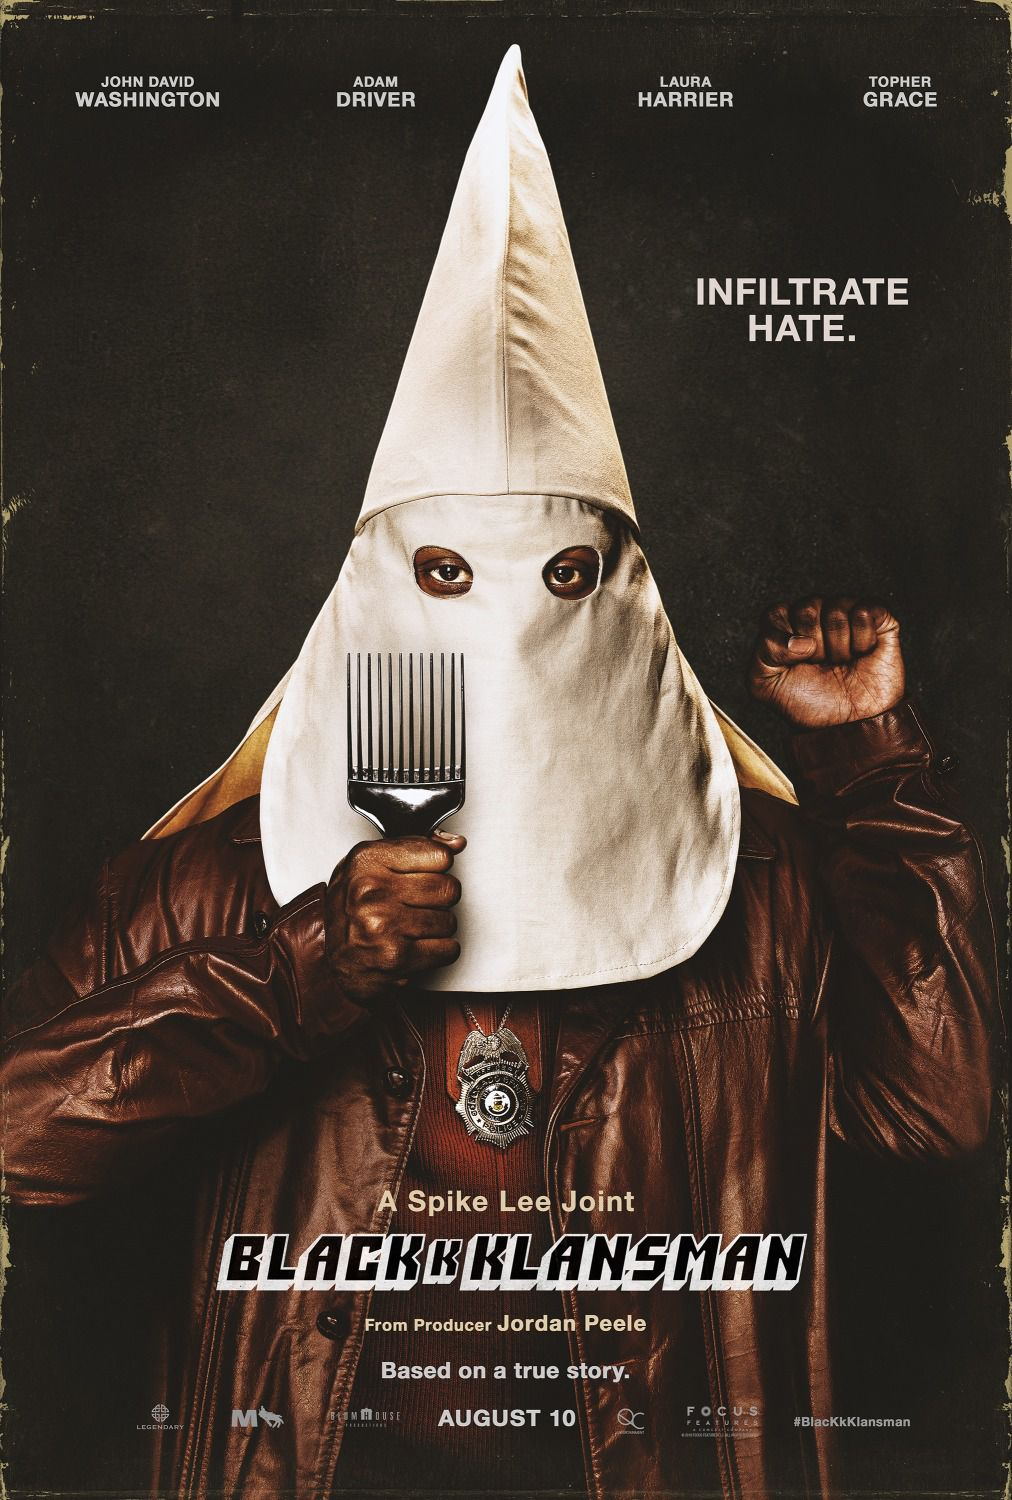 Blackkklansman - Cast: John David Washington, Adam Driver, Laura Harrier, Topher Grace film poster 2018